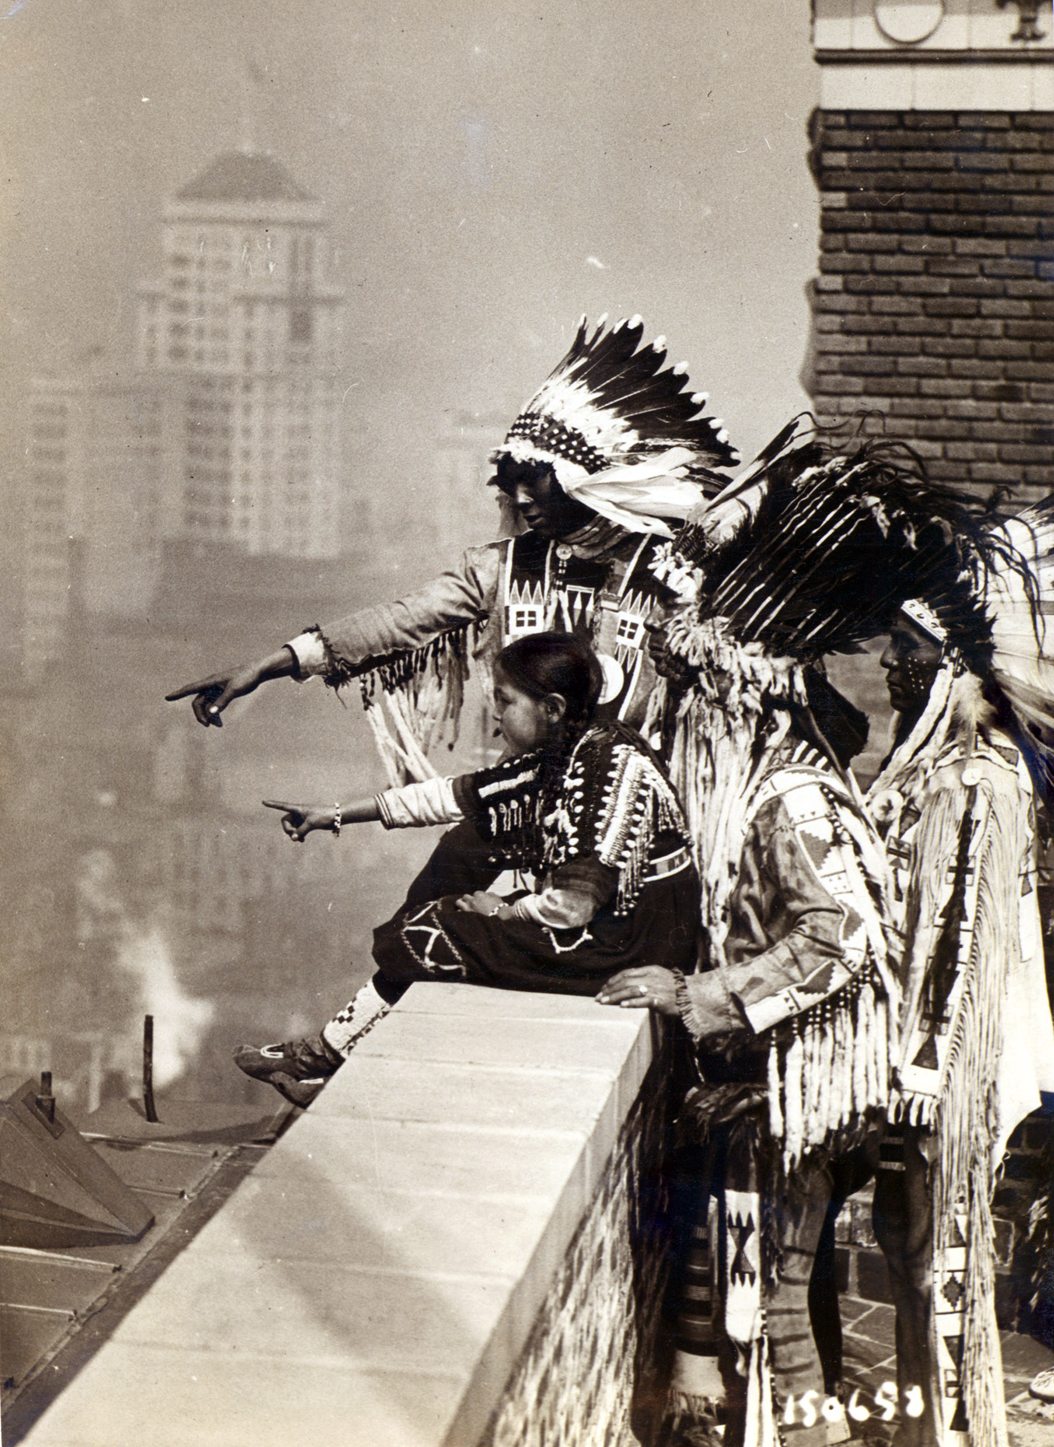 Blackfoot Indians on the roof of the Hotel McAlpin, on which they pitched teepees to sleep, New York City, 1913. © Newberry Library, Chicago, Illinois, USA/The Bridgeman Art Library International.